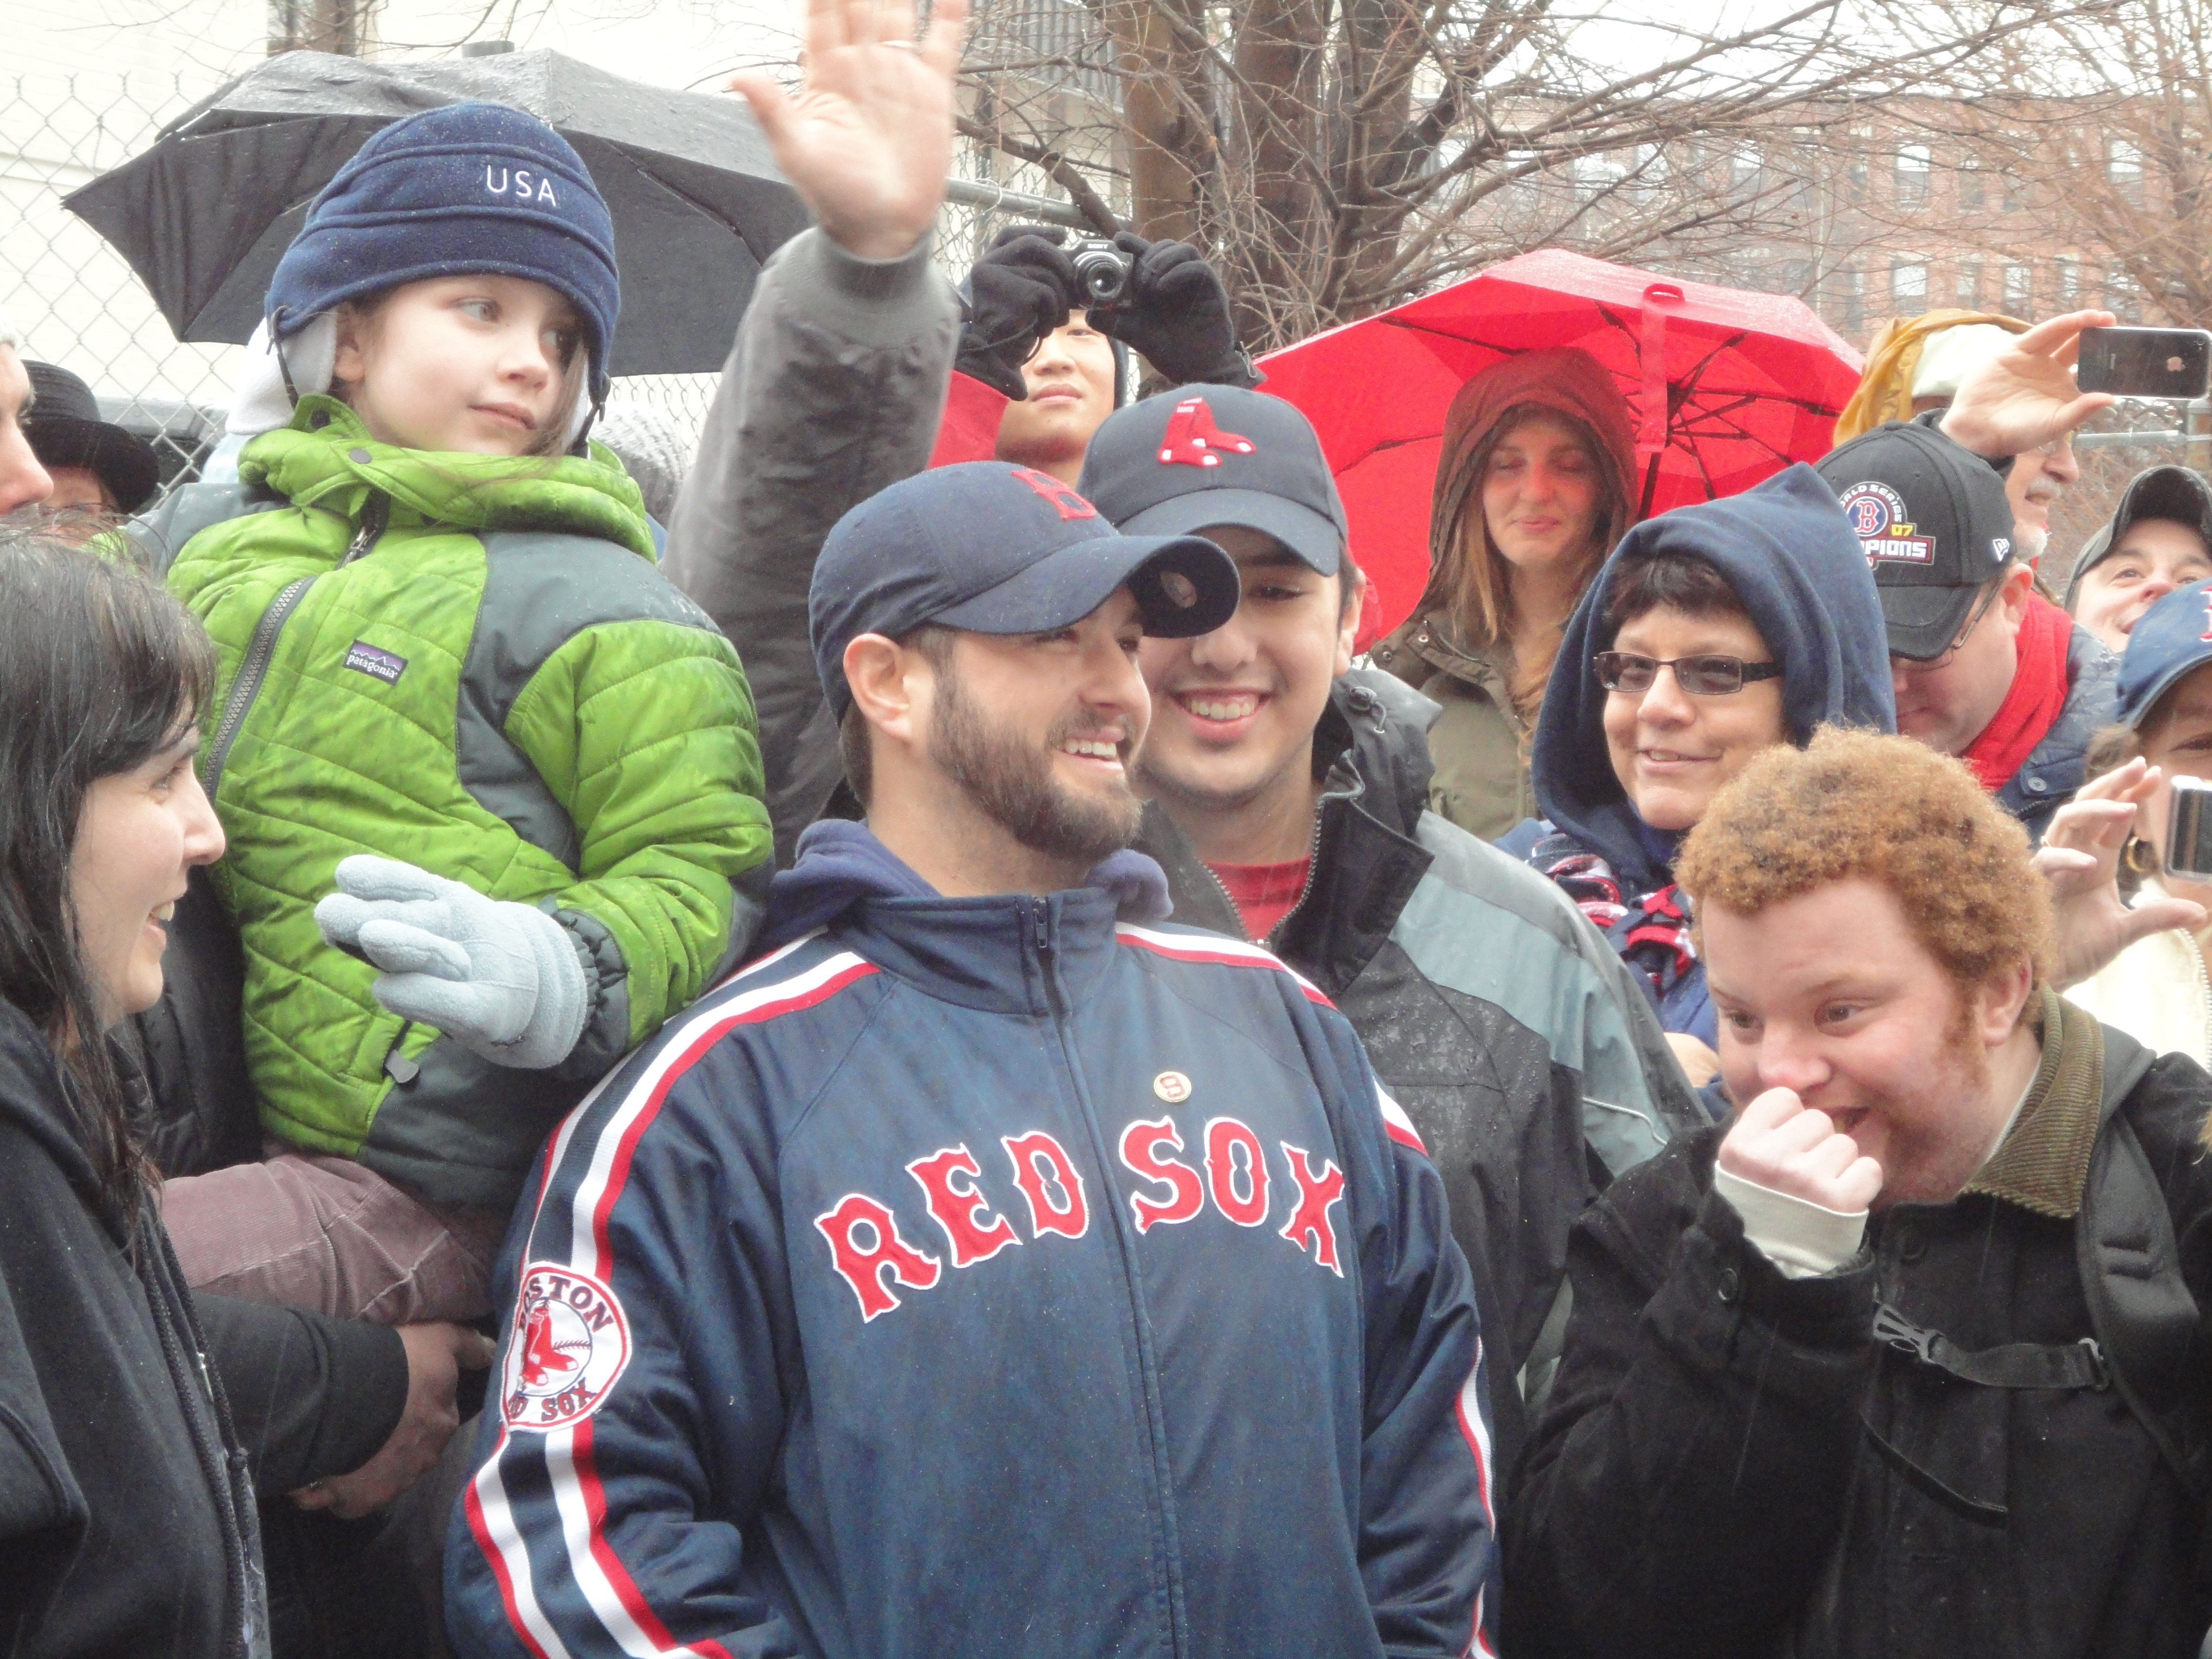 redsoxtruck2.JPG